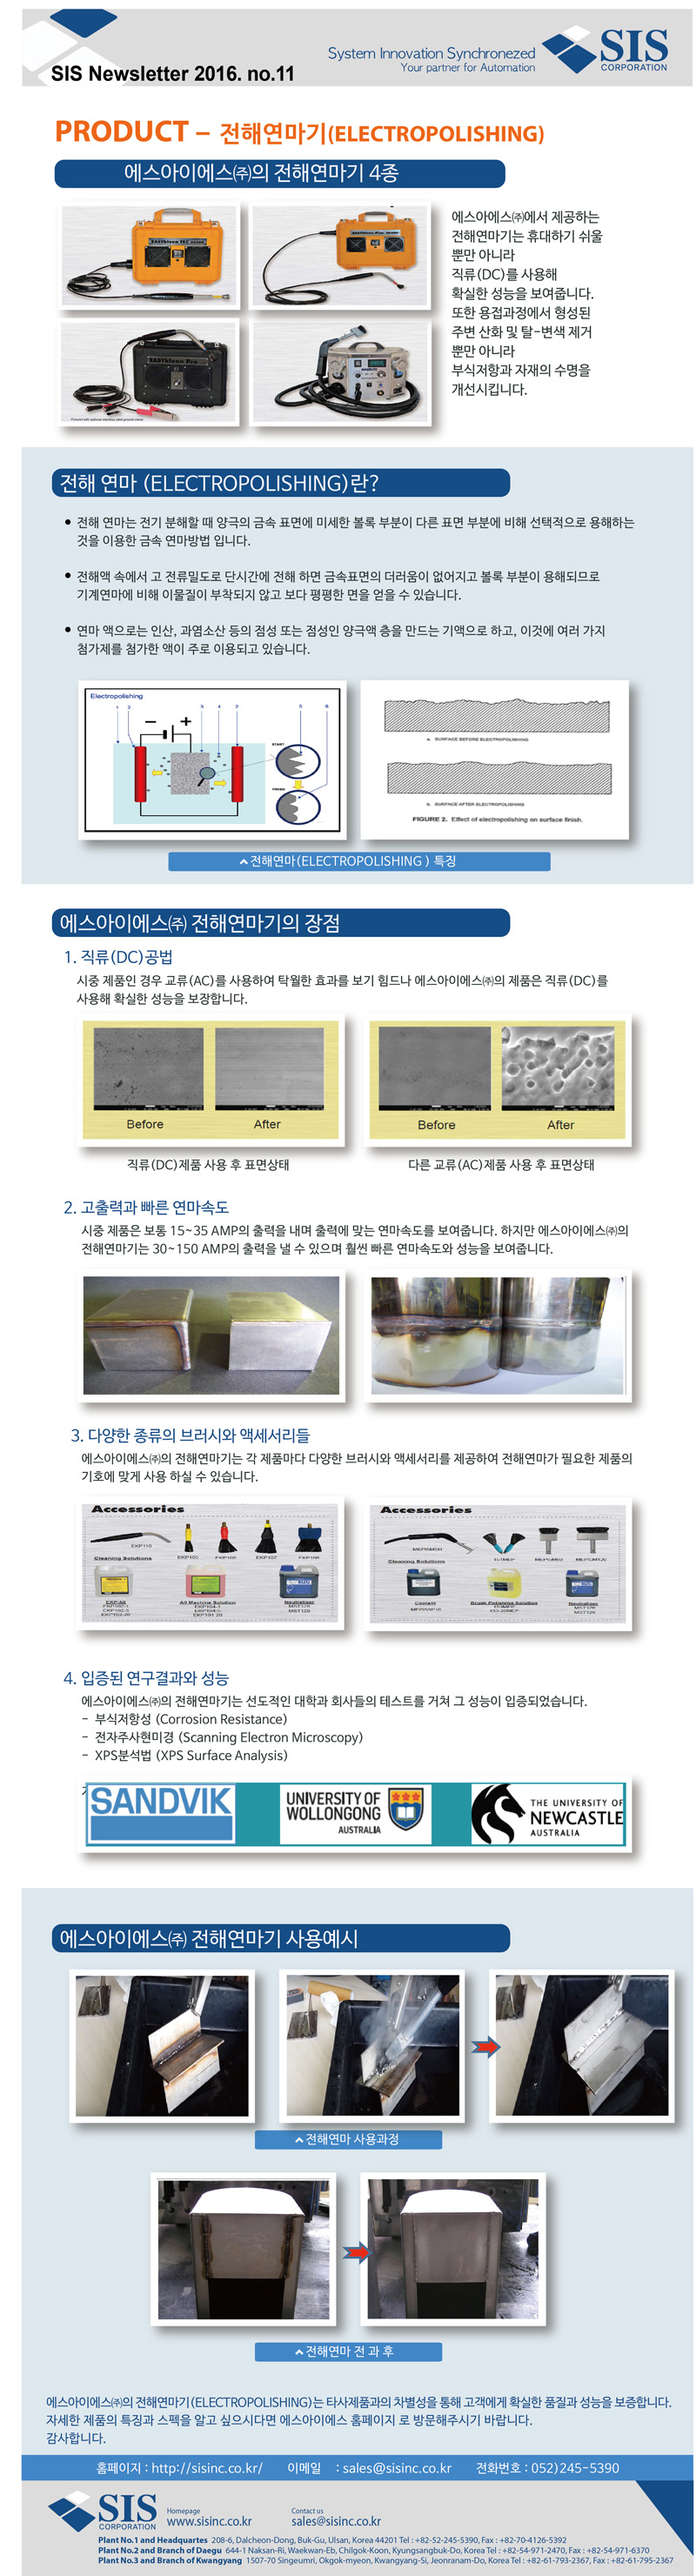 SIS-Newsletter-no11-Electropolishing